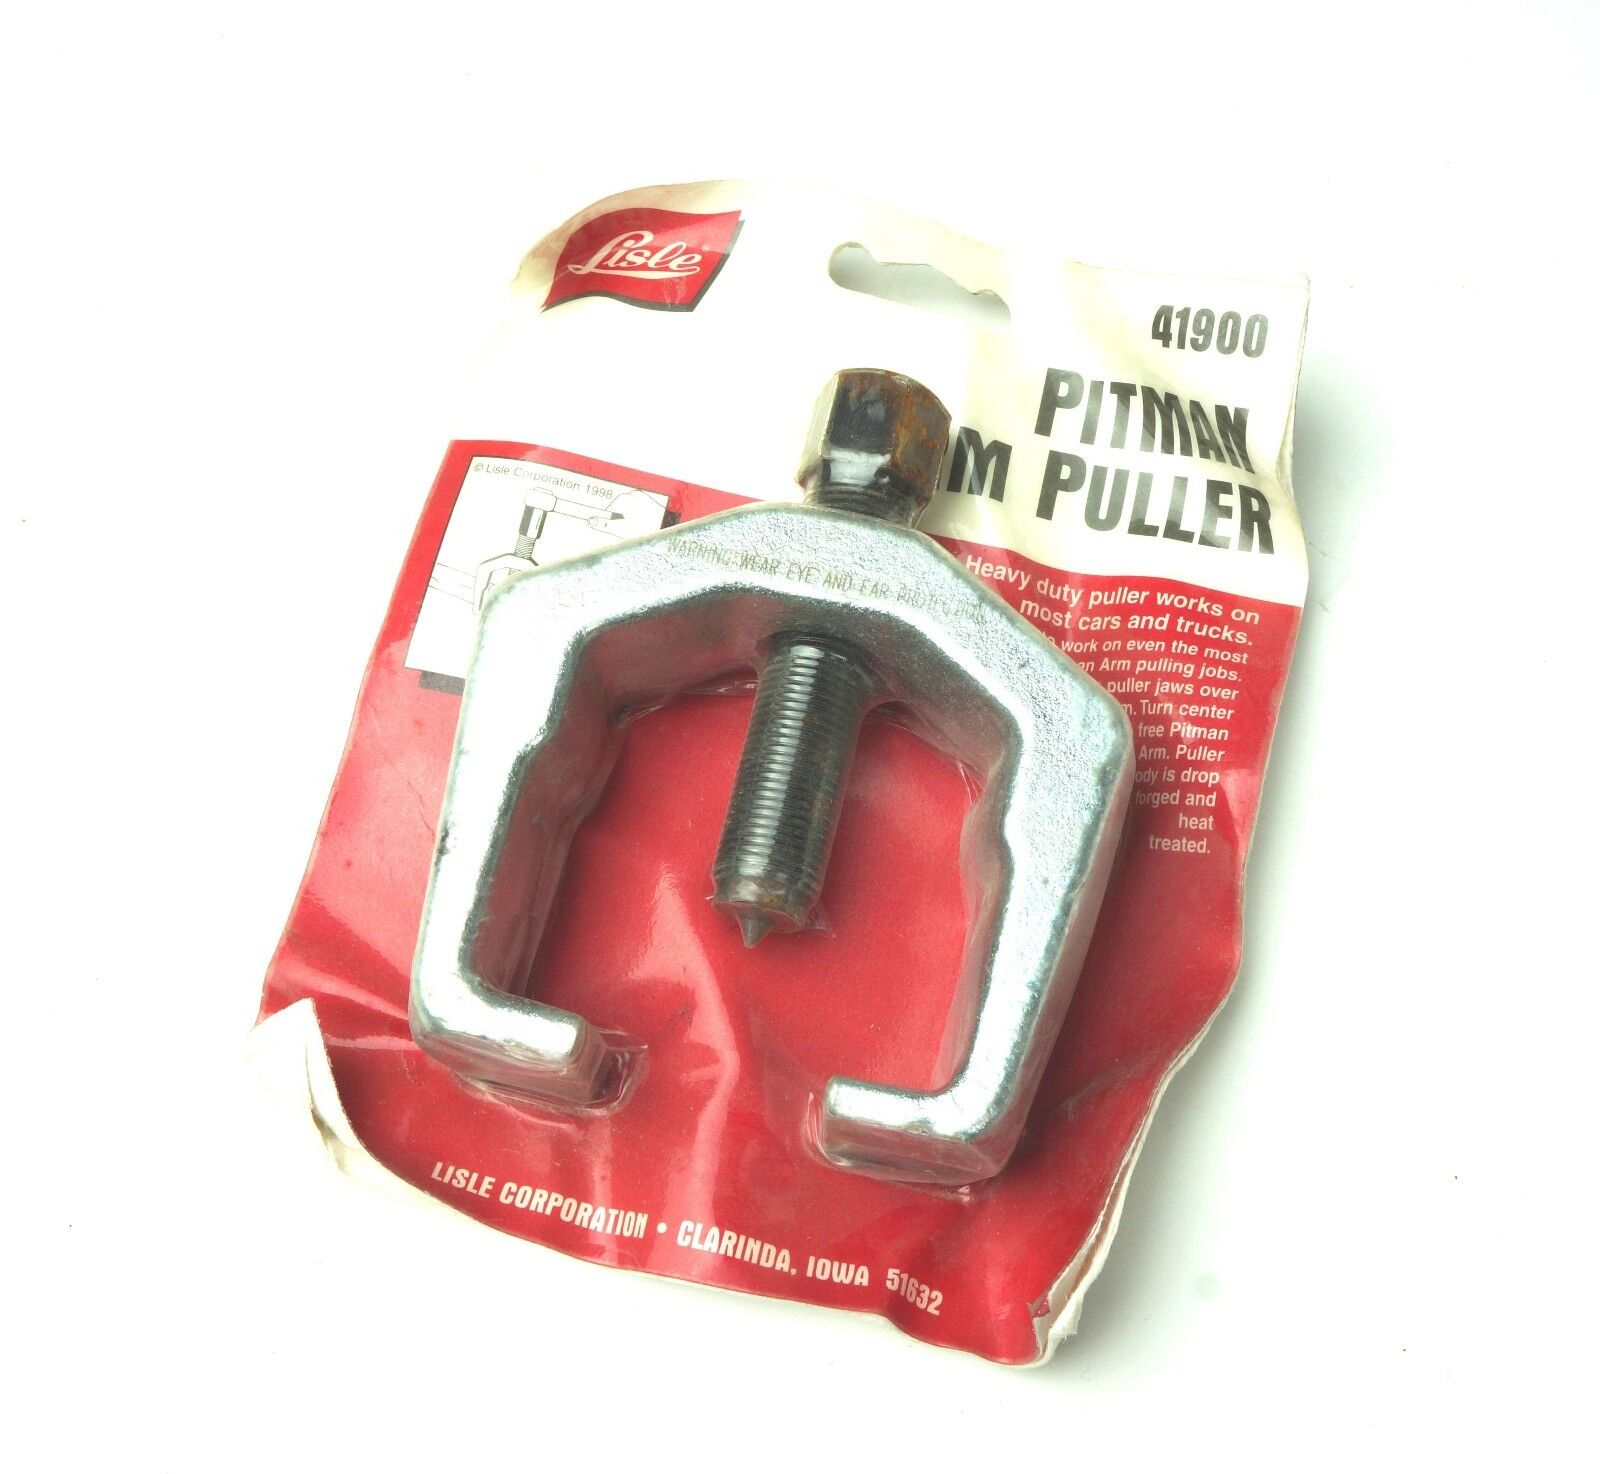 Lisle 41900 Pitman Arm Puller New Other See Details